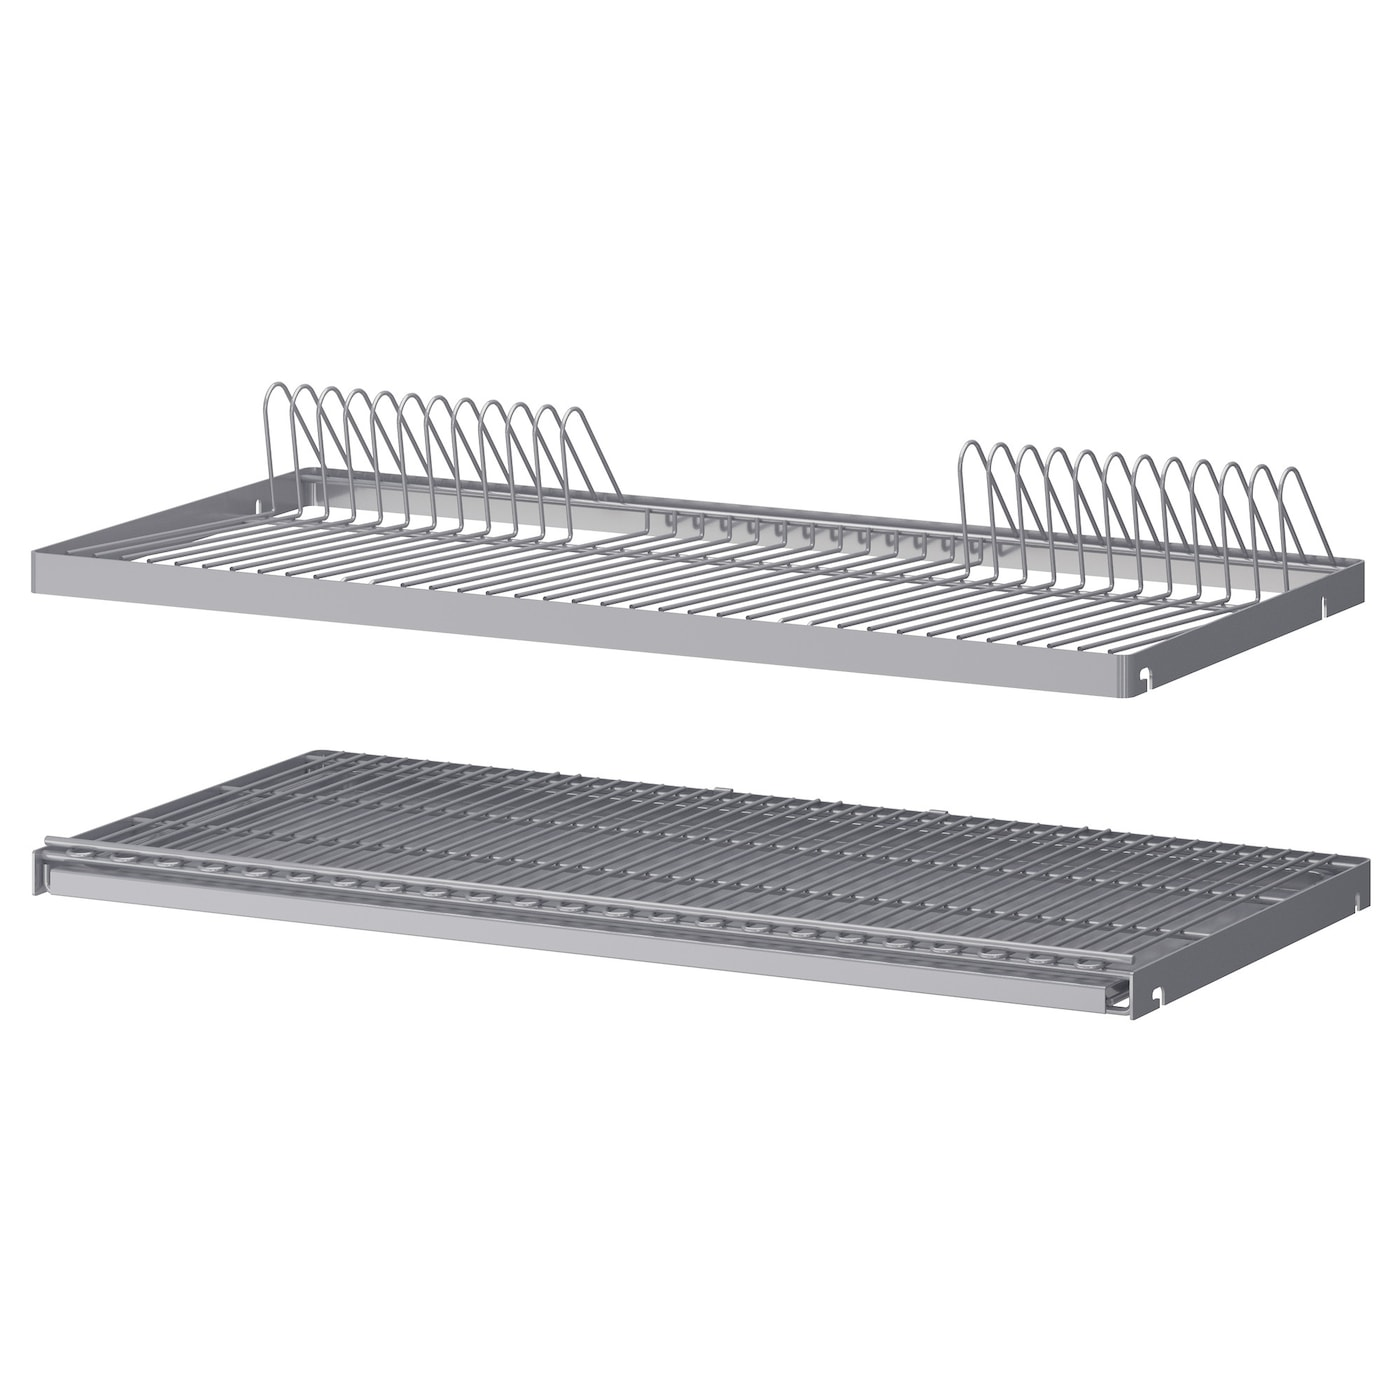 IKEA UTRUSTA dish drainer for wall cabinet